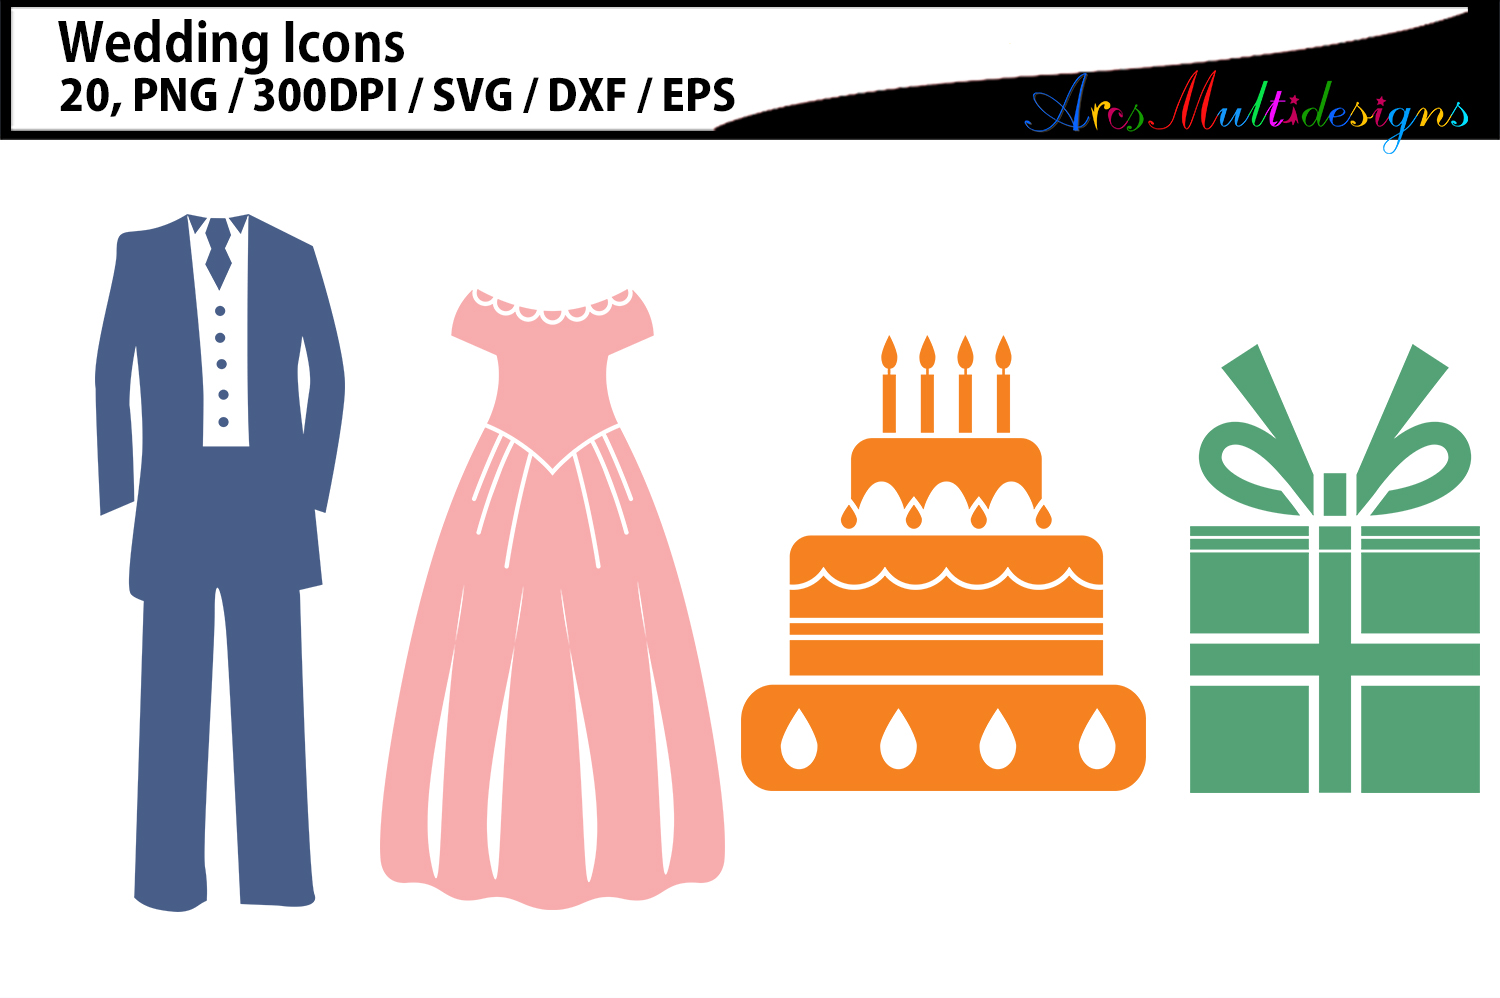 Wedding clipart SVG / Wedding party icon clipart example image 2